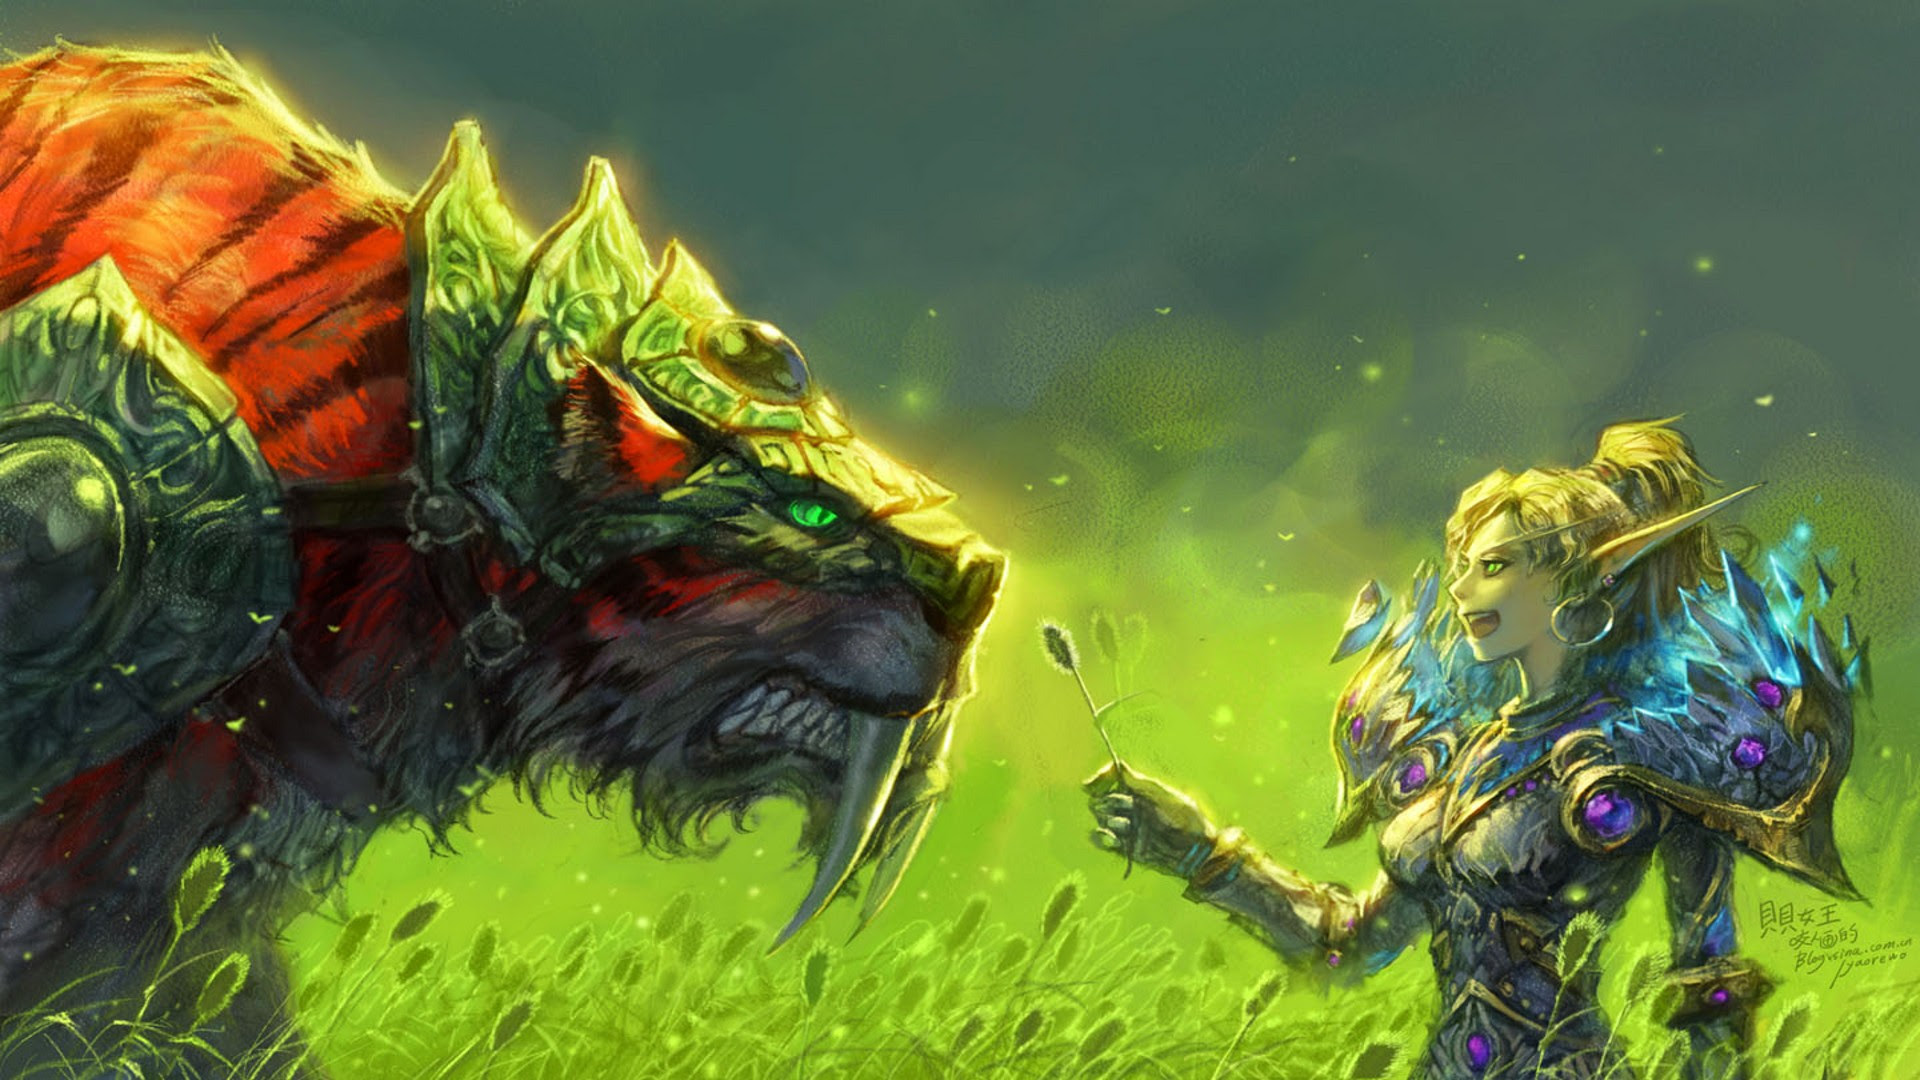 World of WarCraft ( WoW ) Orc Warrior Armor Horns Games Fantasy ... | 1080x1920